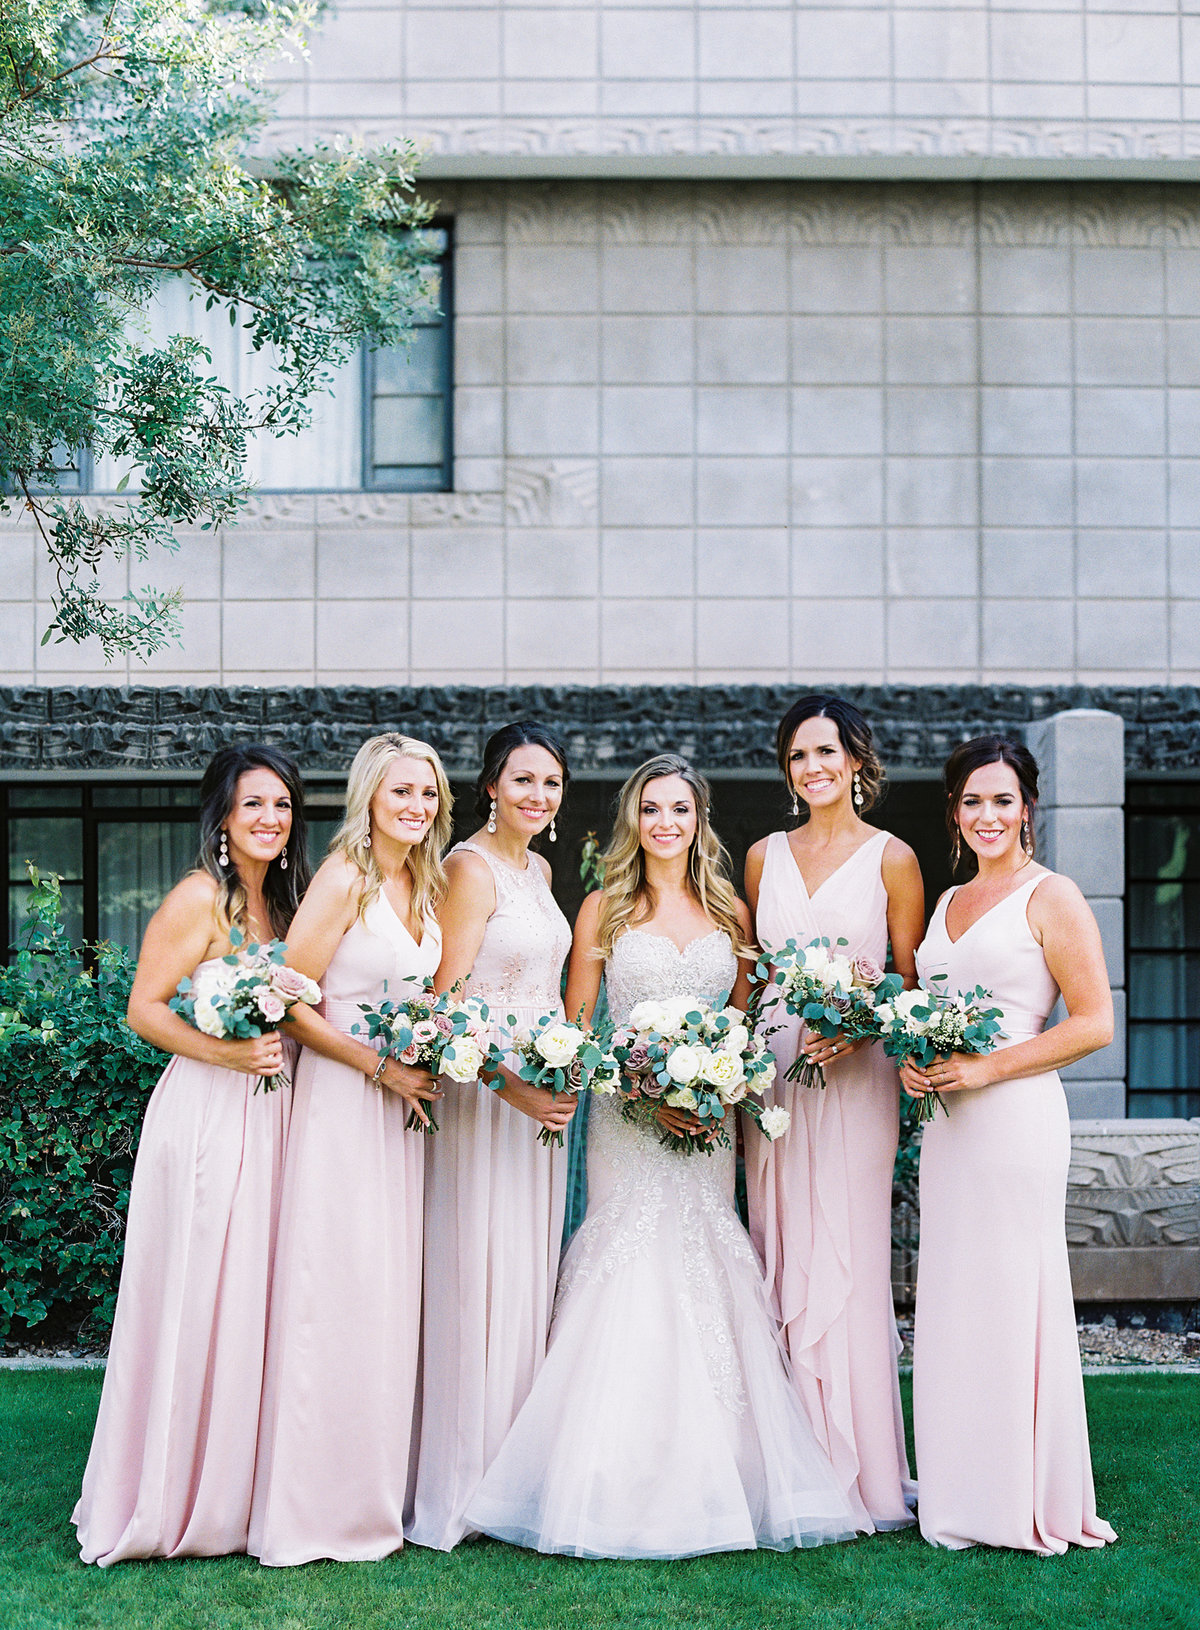 Arizona Biltmore Wedding - Mary Claire Photography-46